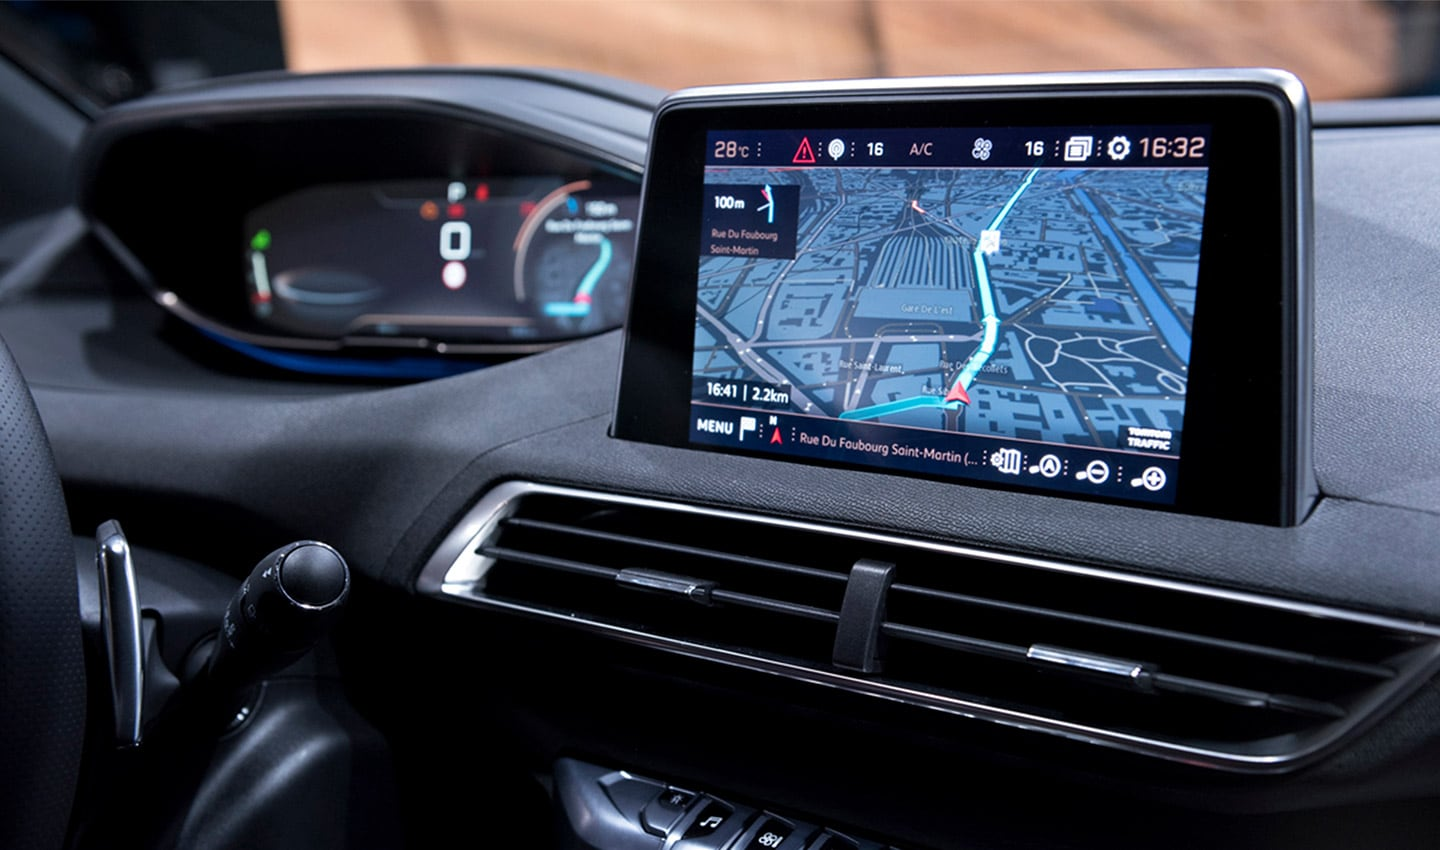 In this day and age, embedded navigation systems are a must-have for many.